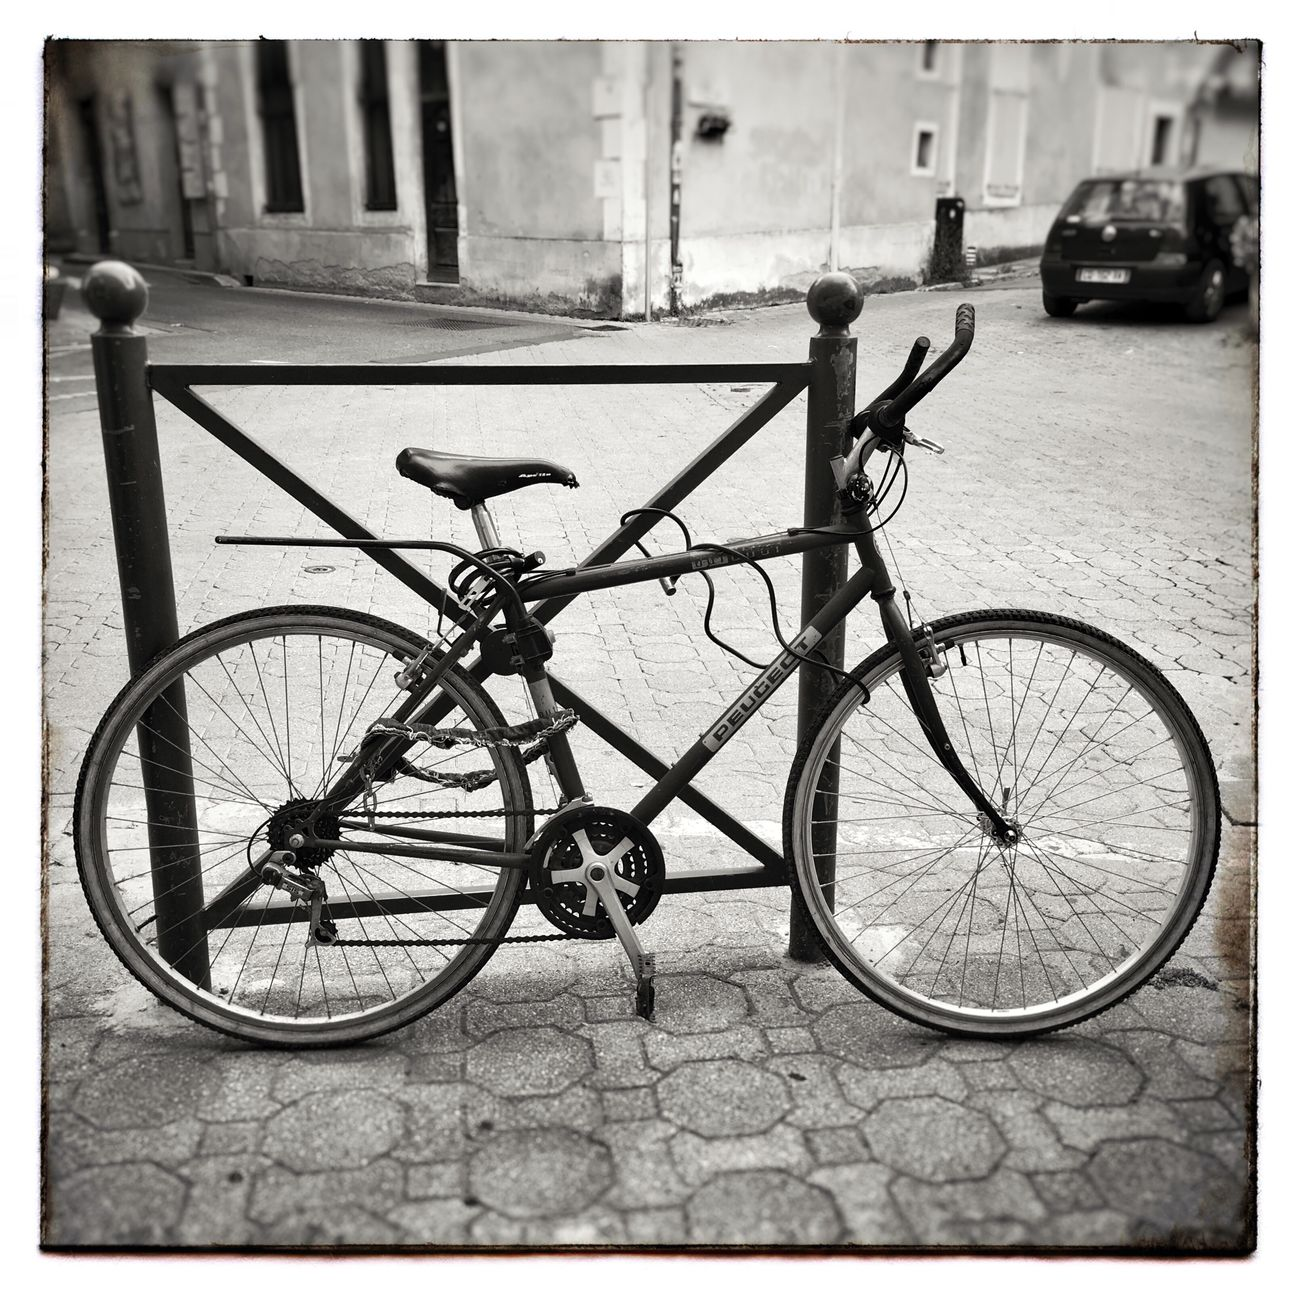 Blackandwhite Blackandwhite Photography Monochrome Monochrome Photography Bicycle Transportation Mode Of Transport Land Vehicle Stationary Outdoors Street Parking Bicycle Rack Day Built Structure Architecture No People Building Exterior City Close-up